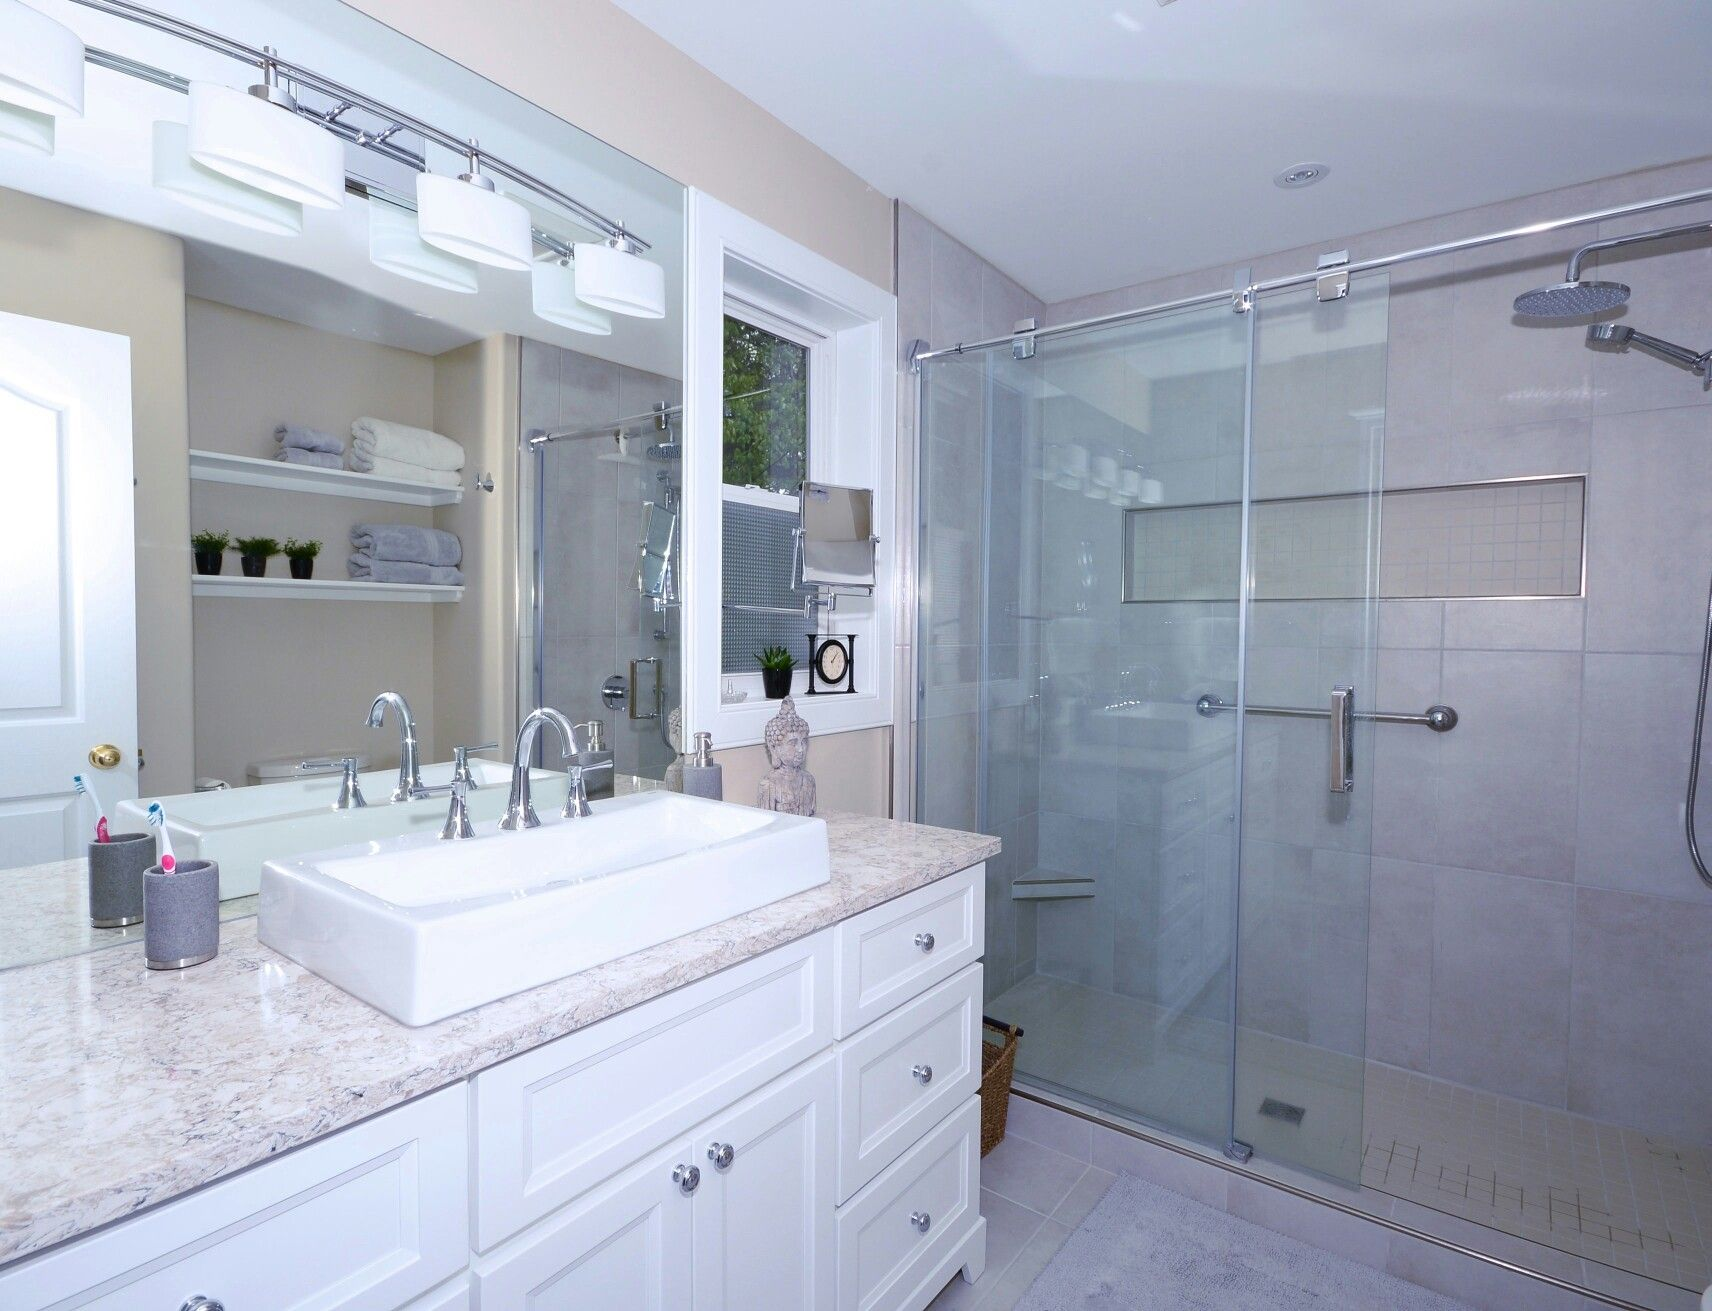 Gleaming whites made this bathroom remodel sparkle with elegance ...